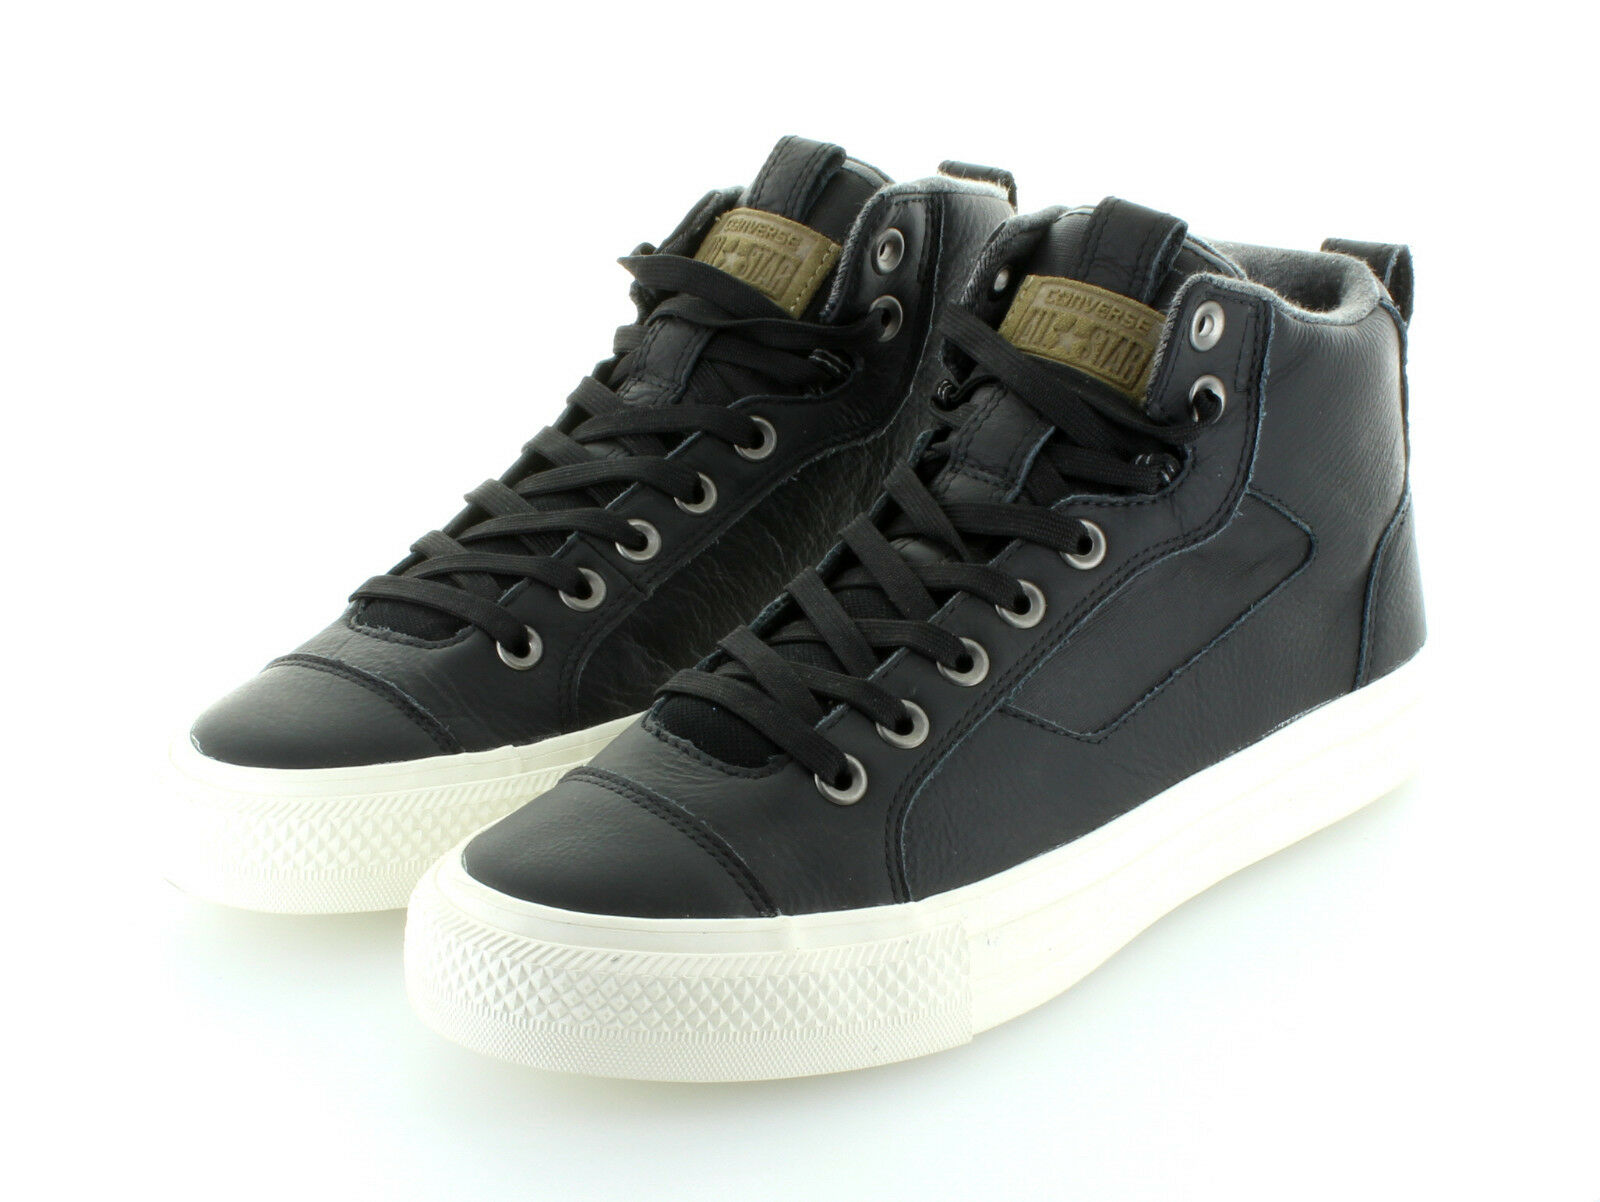 Converse Chuck Taylor All Star Mid High Leather Black 42,5 / 43 US 9